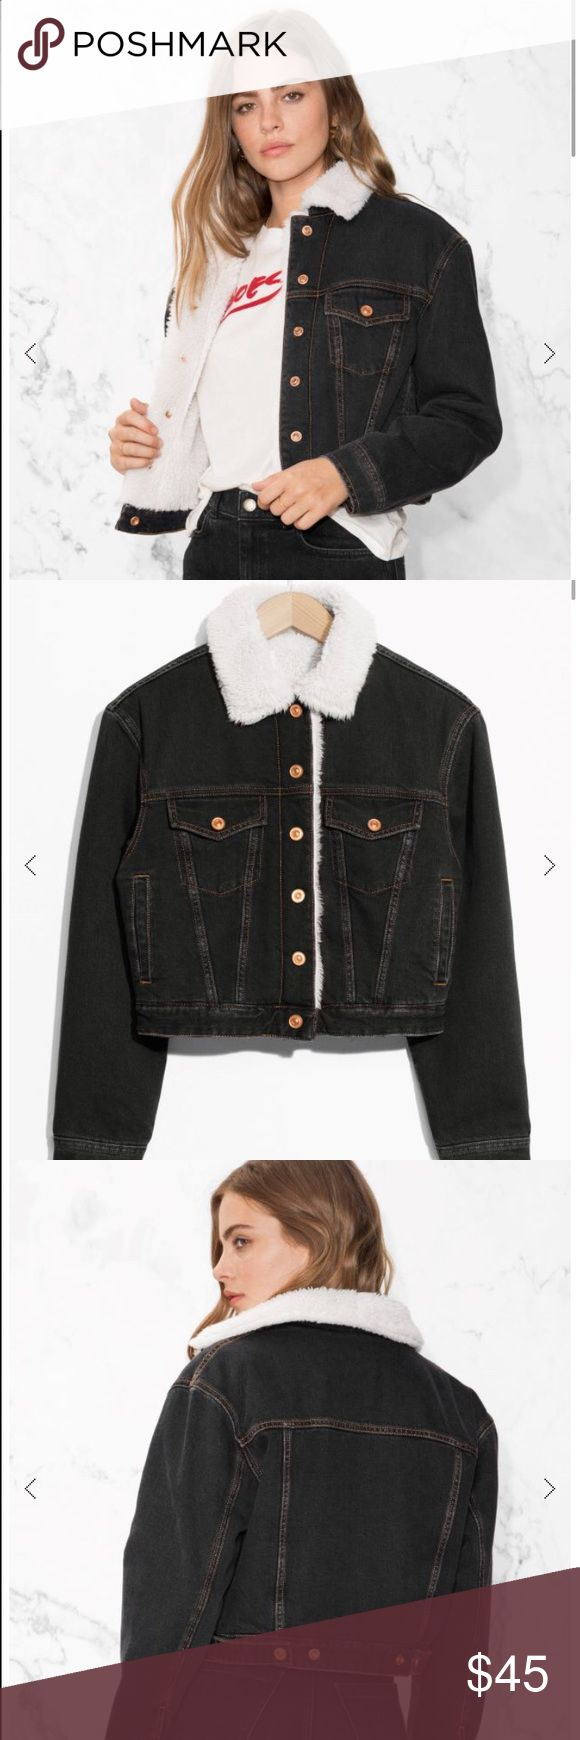 NEW & Other Stories Denim jacket w/ shearling BRAND NEW (w tags) & Other Stories Slightly cropped denim jacket lined with shearling for warmth. Features a shearling neck. Dark indigo wash (as in photo). Size m. Fits like an S & Other Stories Jackets & Coats Jean Jackets